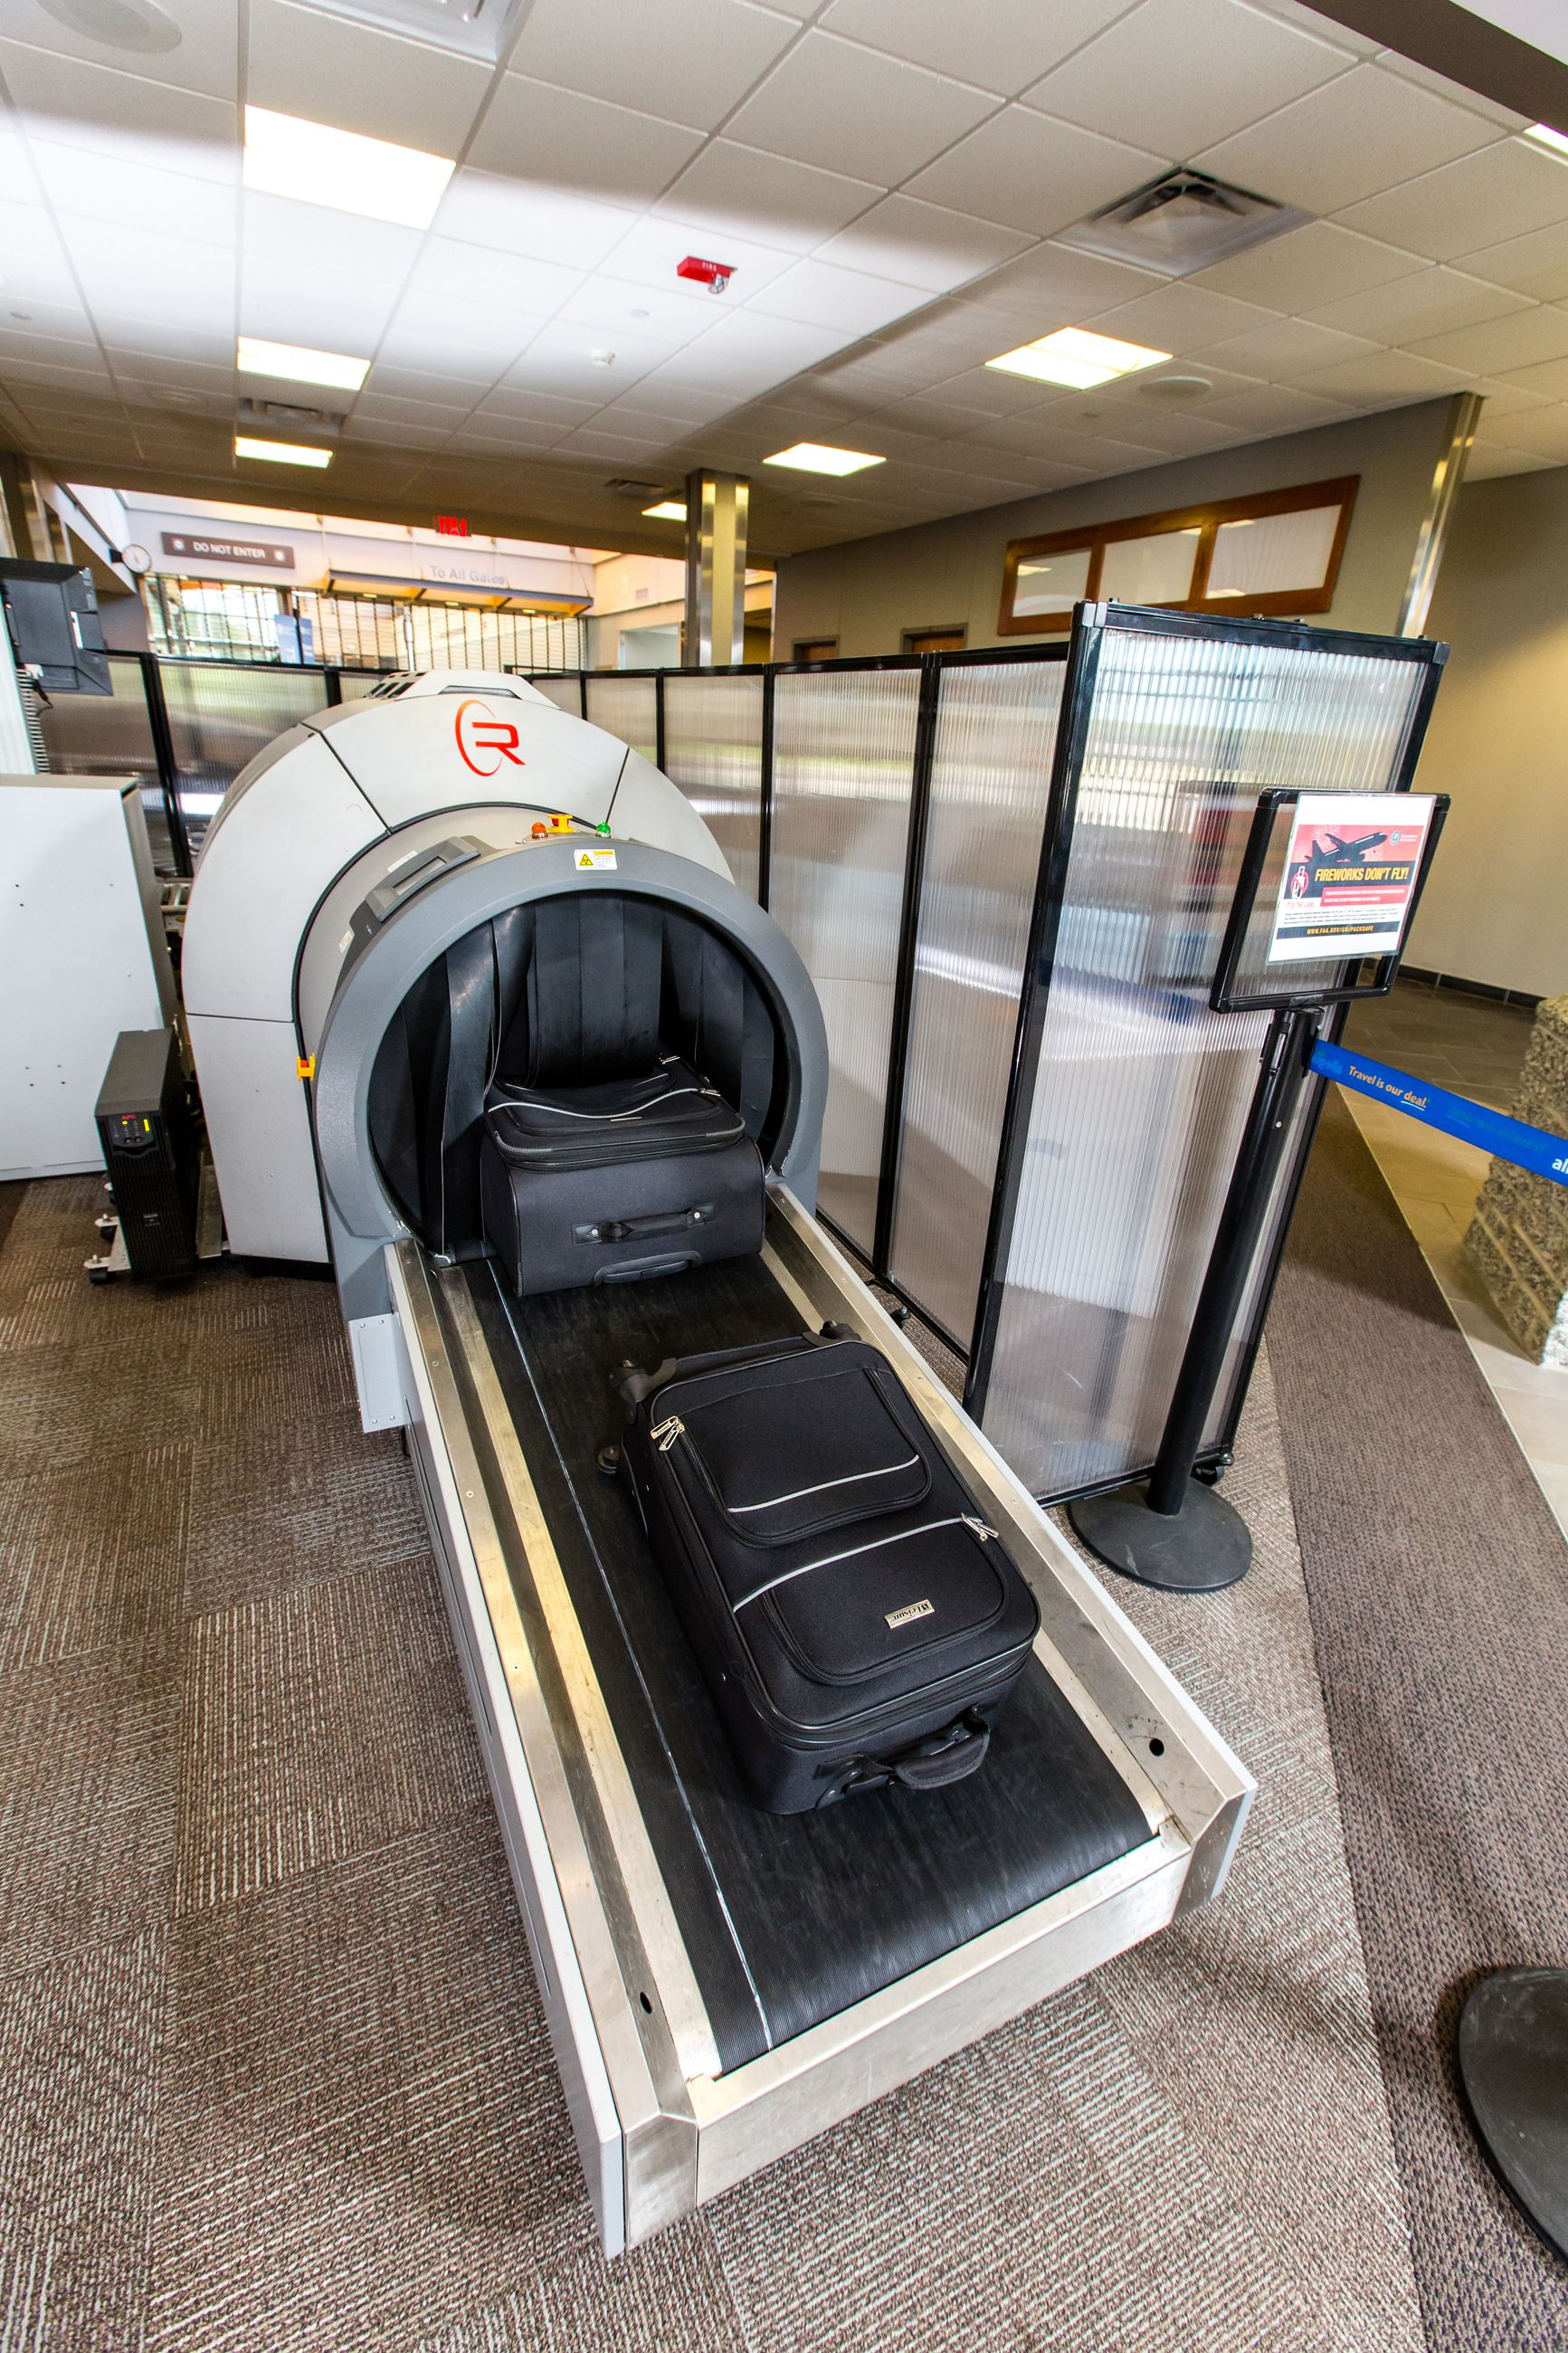 Xray machine for checked bags